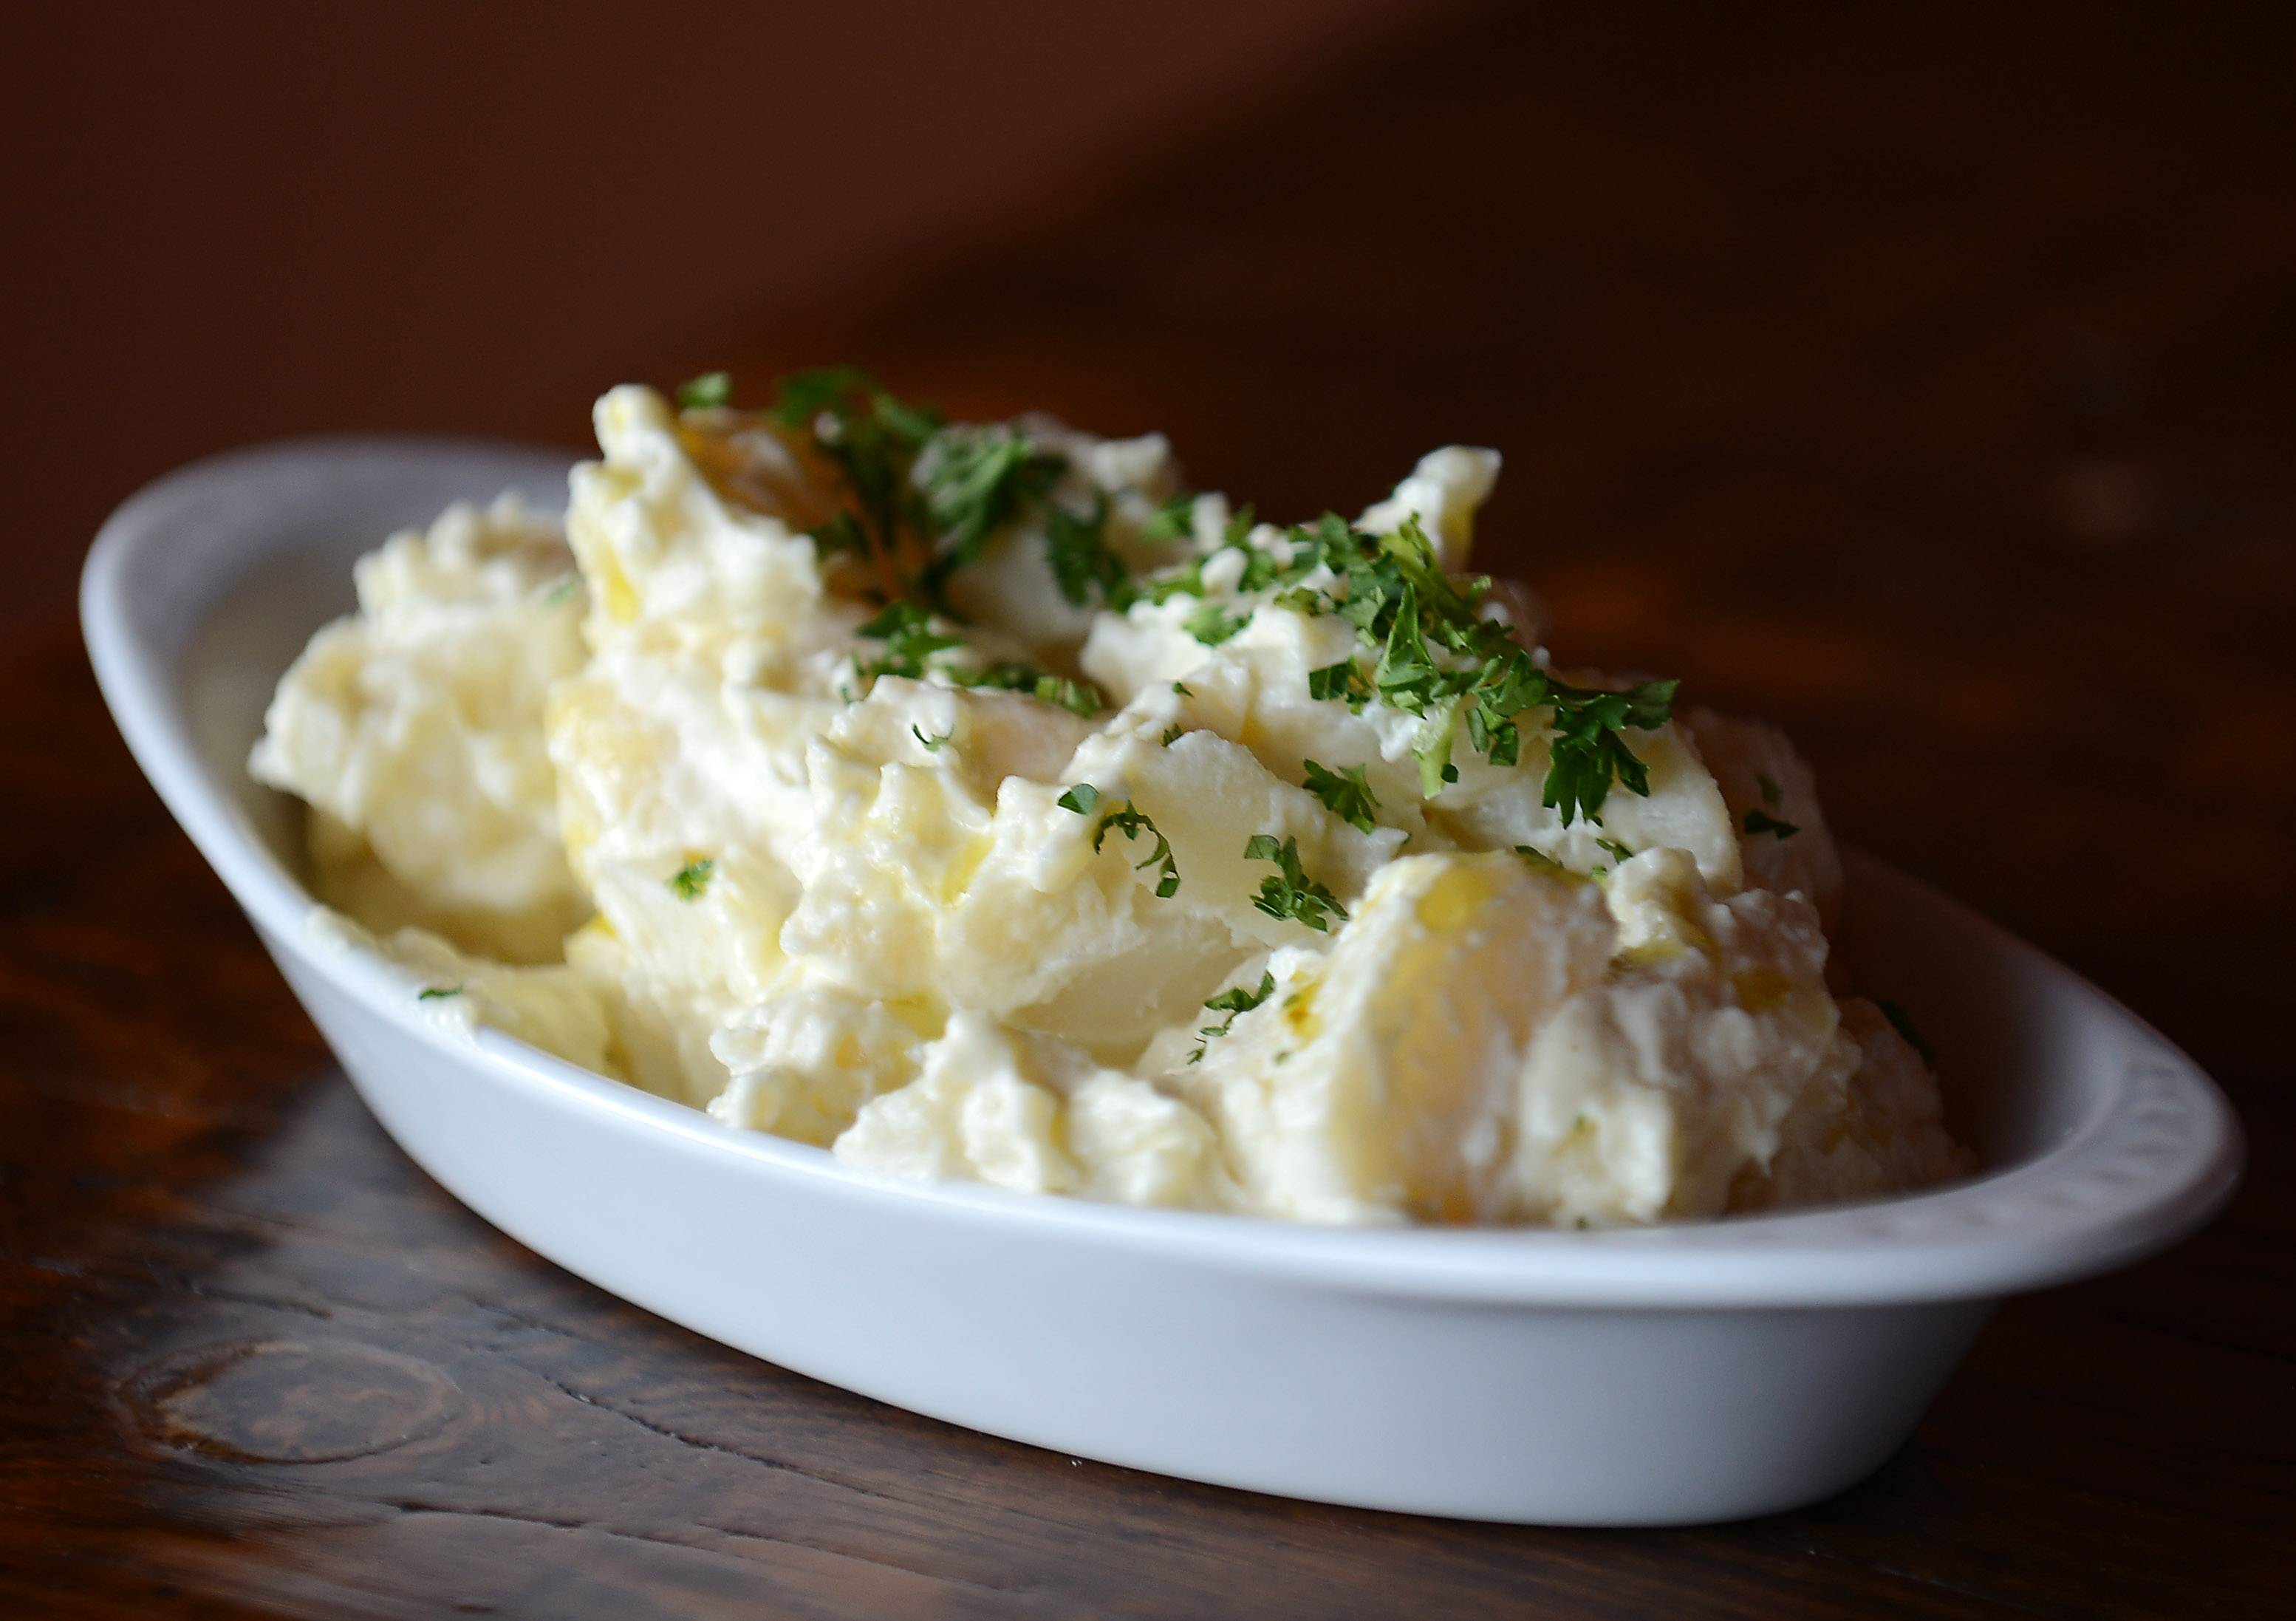 Patatas Alioli, or garlic potato salad, is one of the many small-plate options available at Macarena Tapas in St. Charles.